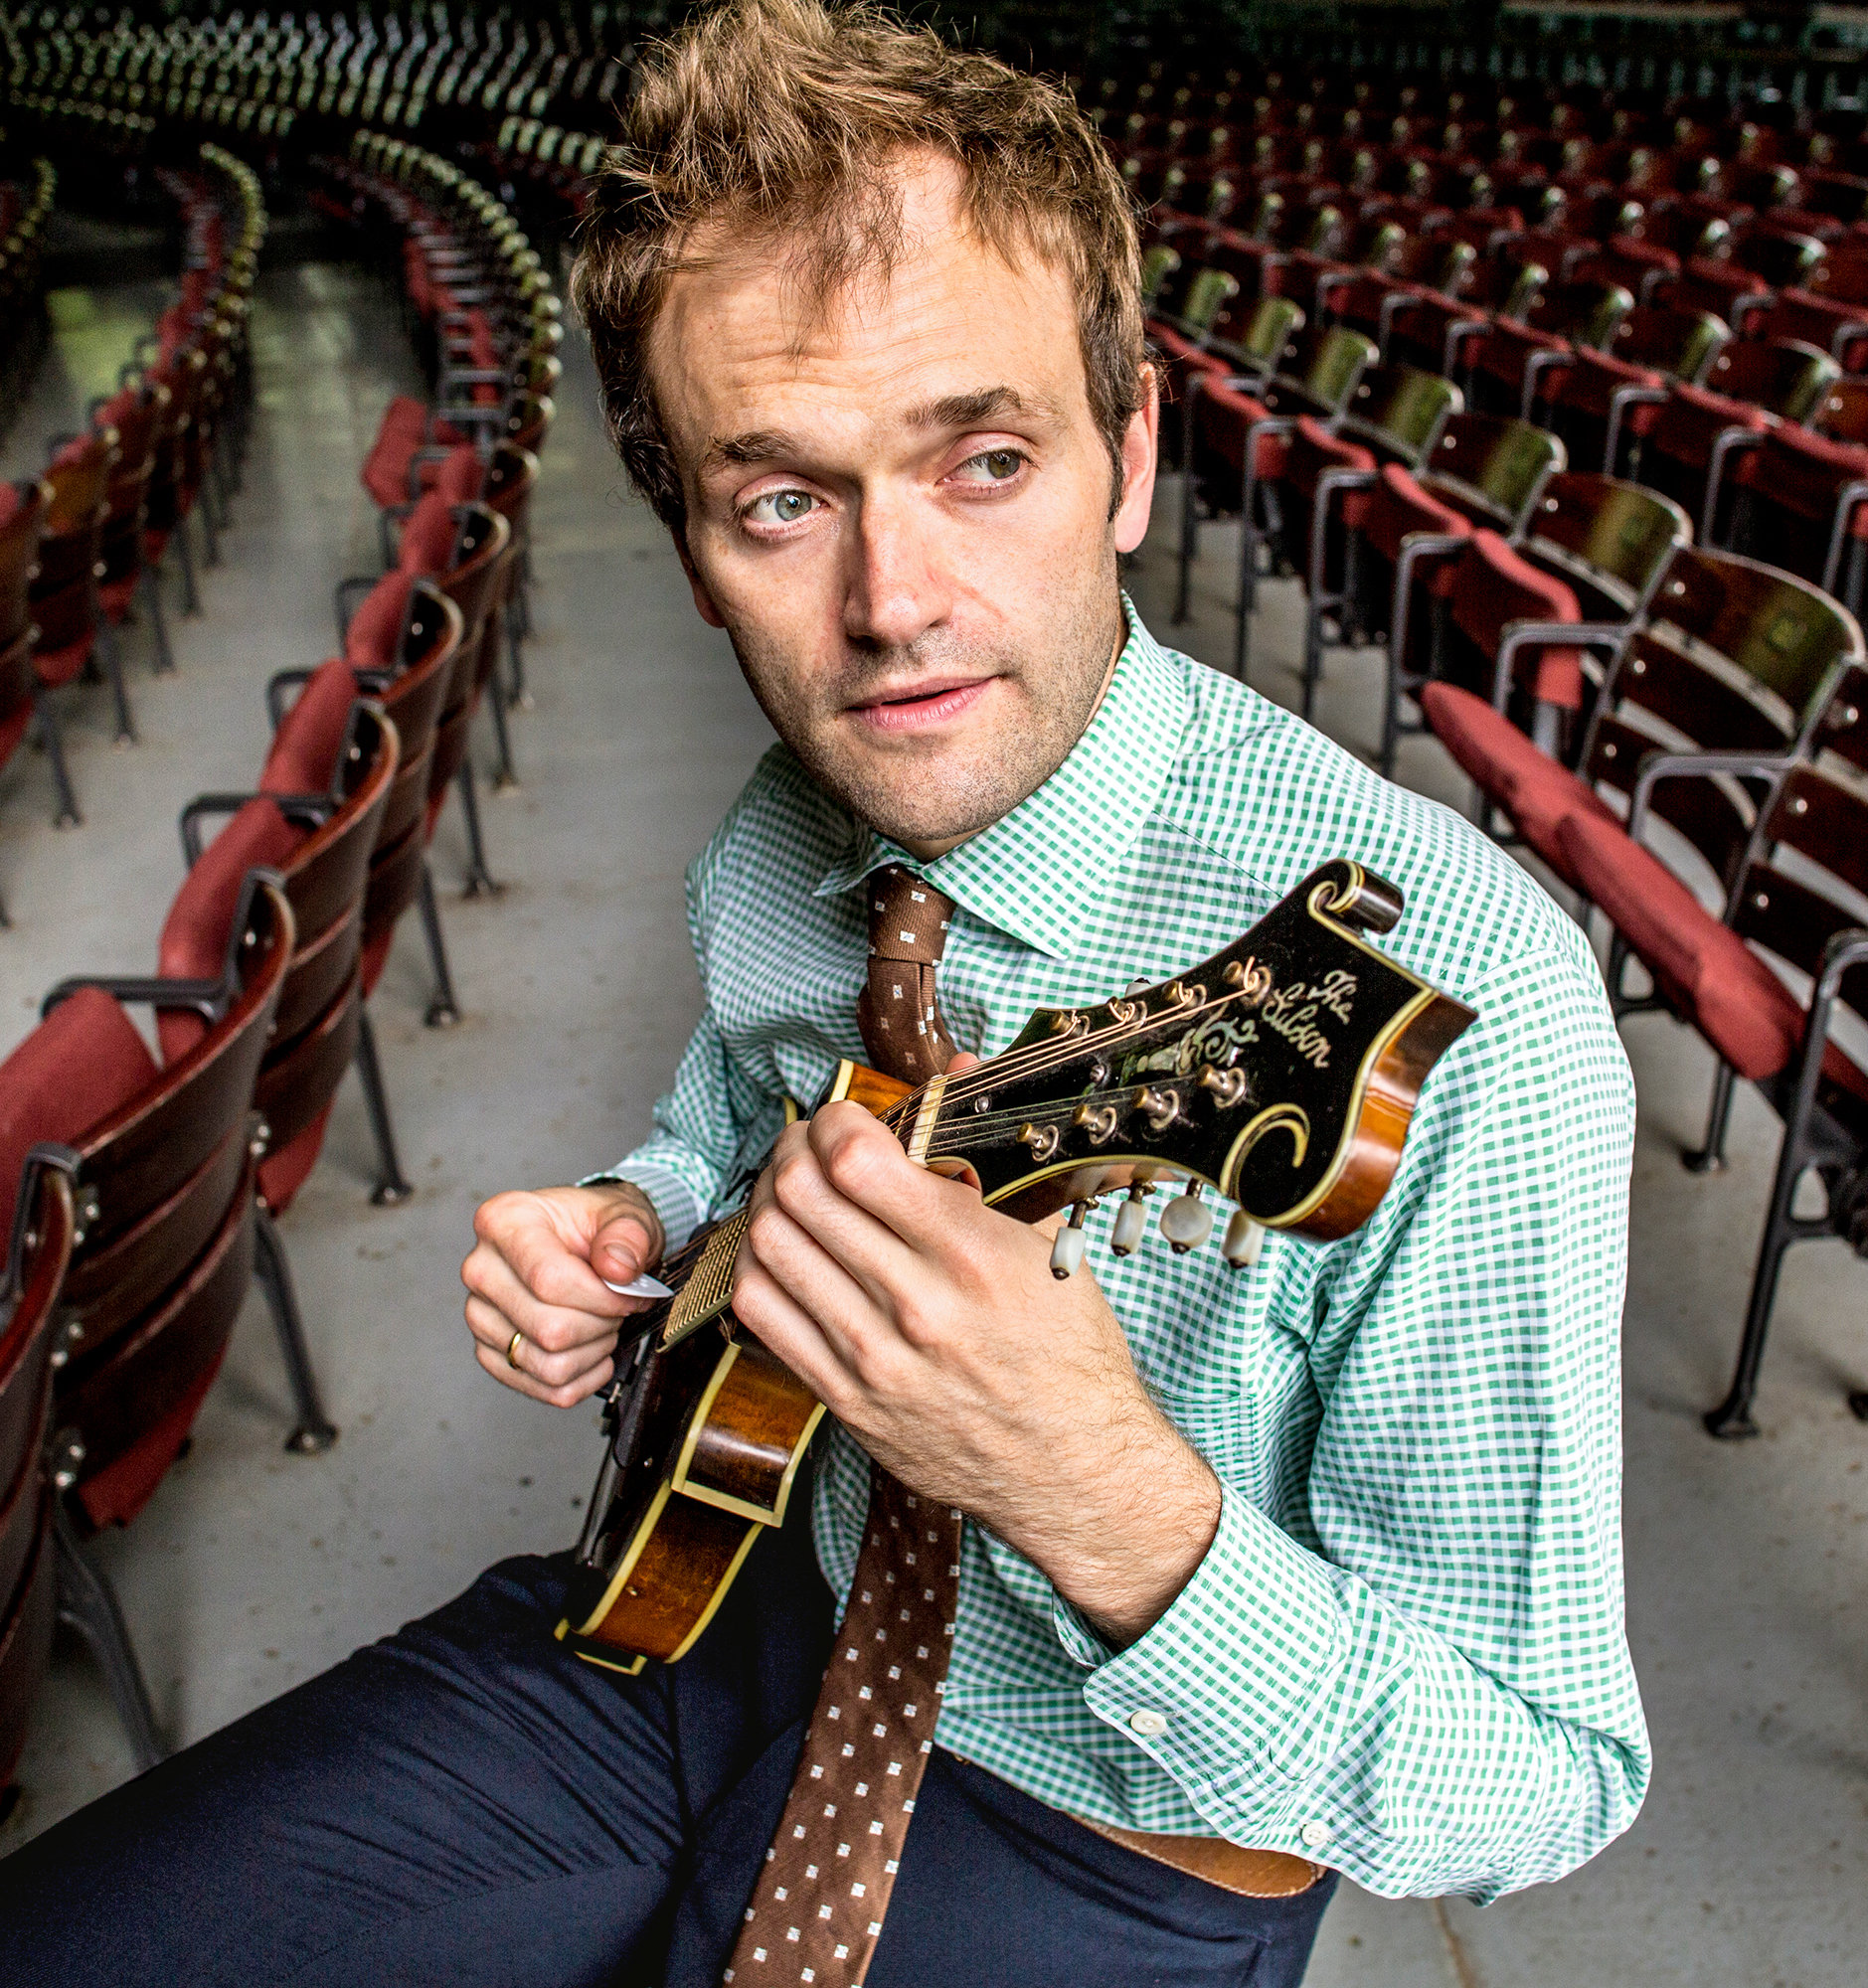 'A Prairie Home Companion' Without Garrison Keilor?  The New York Times Magazine September 2016